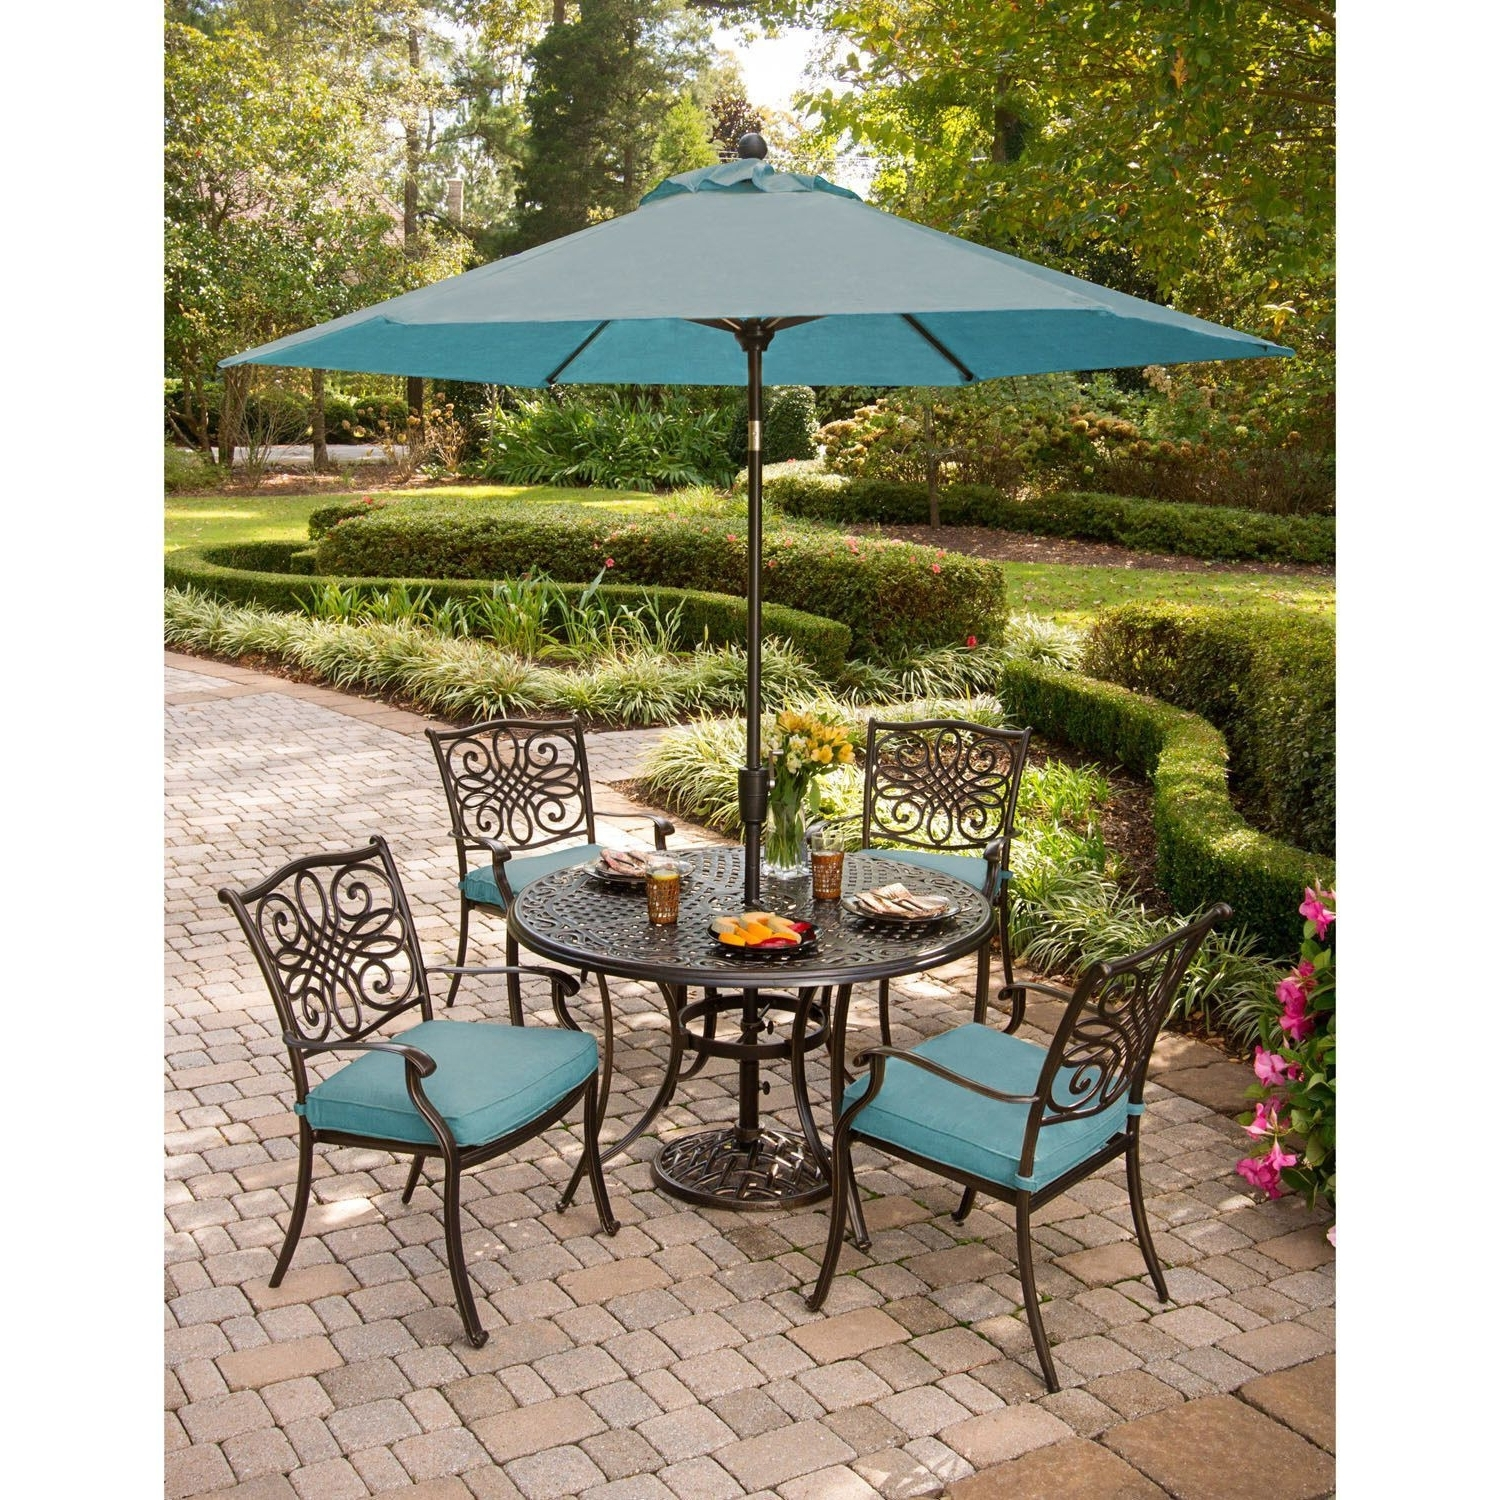 Small Patio Umbrellas Intended For Well Known Small Patio Umbrella Dazzling 22 Outdoor Umbrellas Furniture – Home (View 15 of 20)